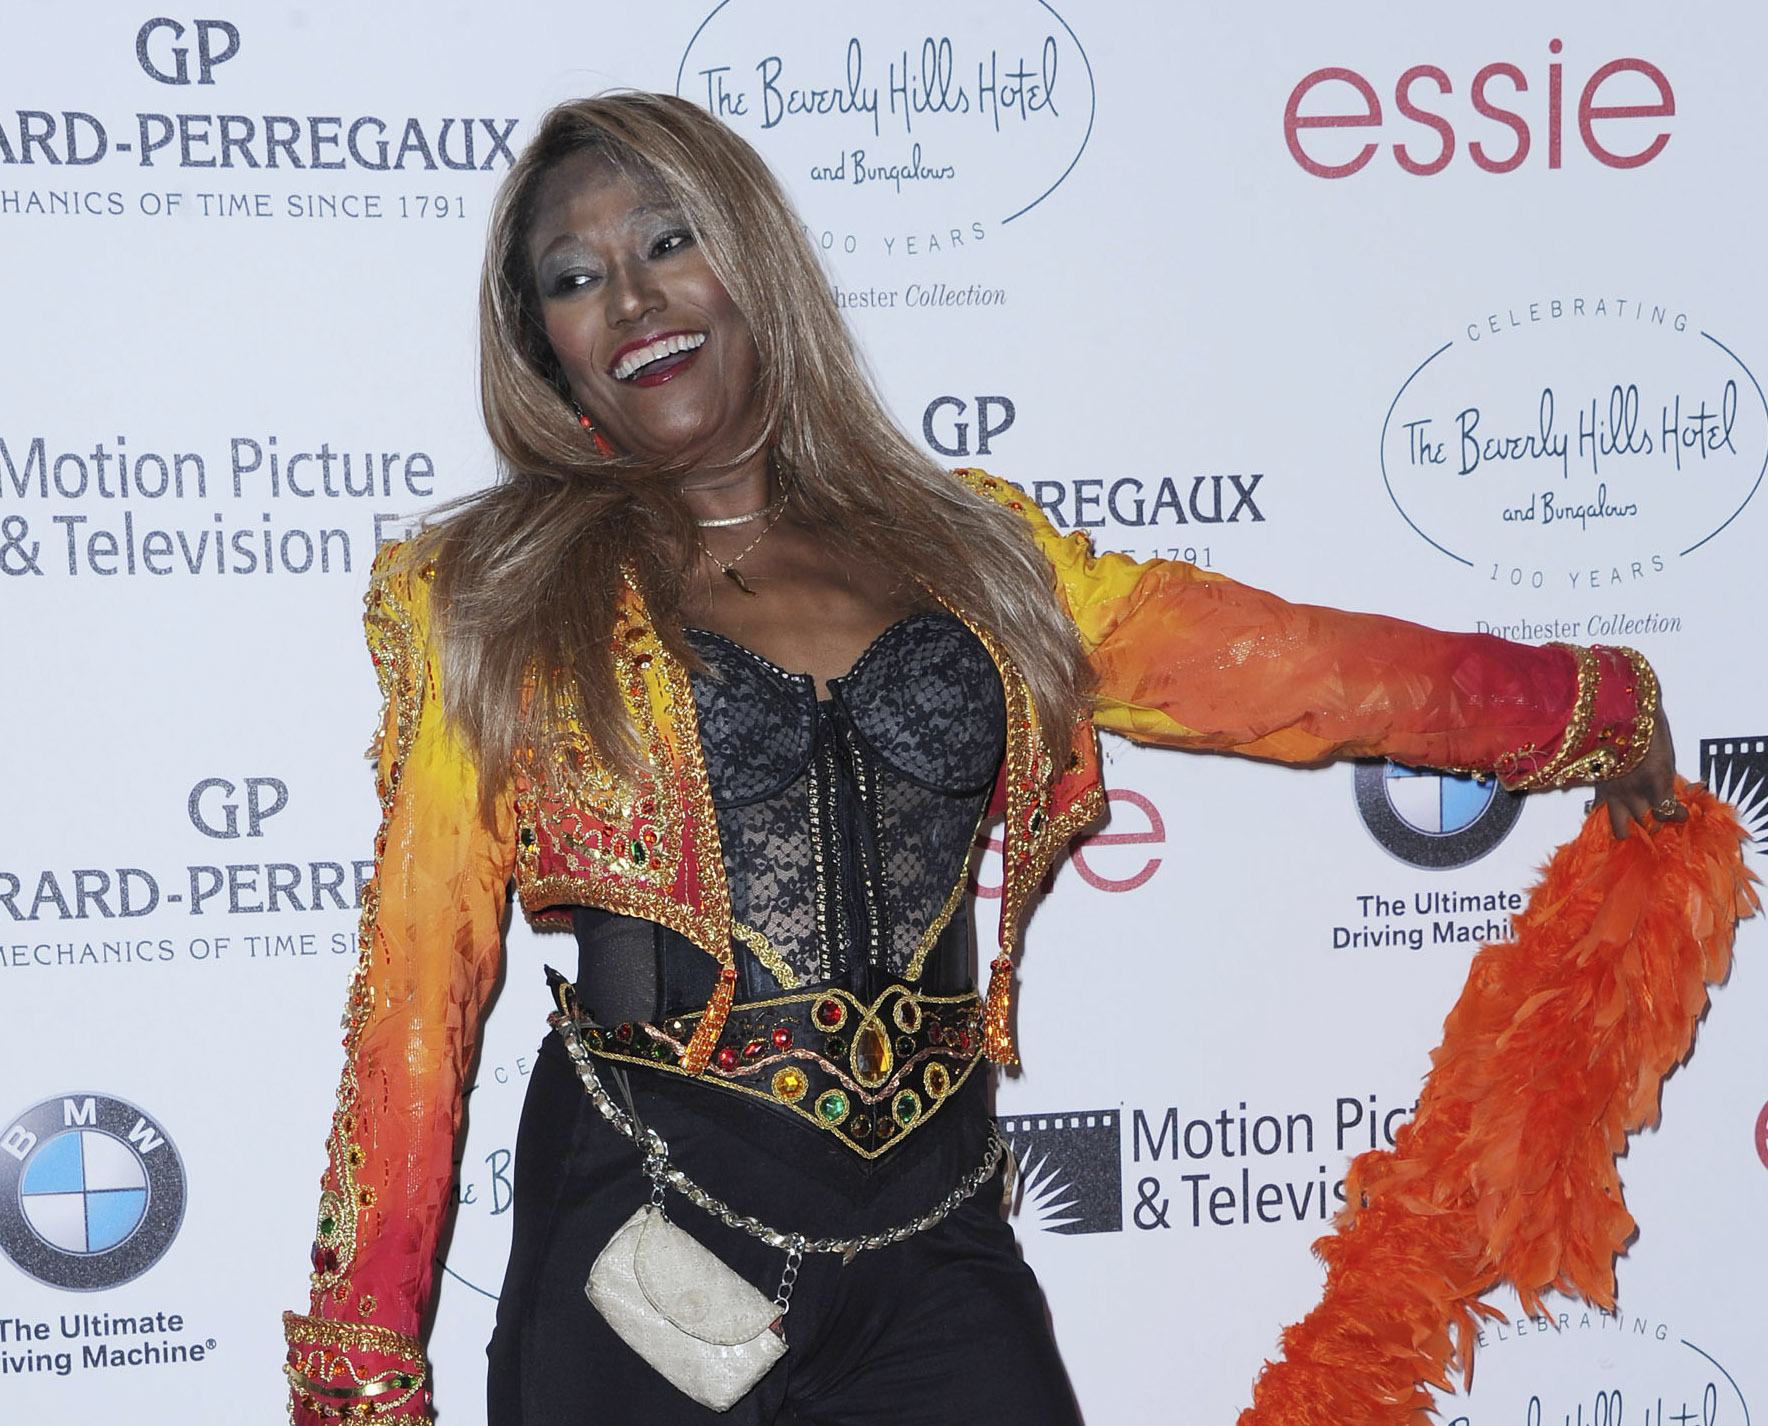 Mandatory Credit: Photo by Katy Winn/Invision/AP/Shutterstock (10673819a) Bonnie Pointer attends the 100th Anniversary of The Beverly Hills Hotel in Beverly Hills, Calif. Pointer, founding member of the Pointer Sisters, has died. Publicist Roger Neal says Pointer died of cardiac arrest in Los Angeles on Monday. She was 69 Obit Bonnie Pointer, Beverly Hills, United States - 16 Jun 2012